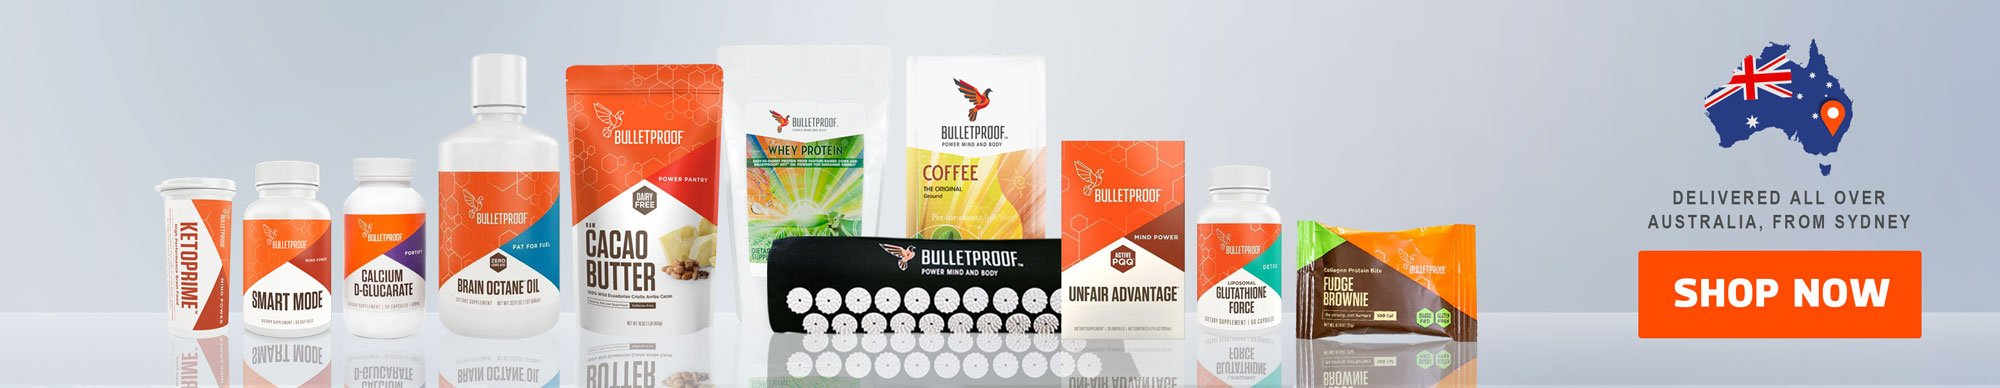 Australia Bulletproof Coffee